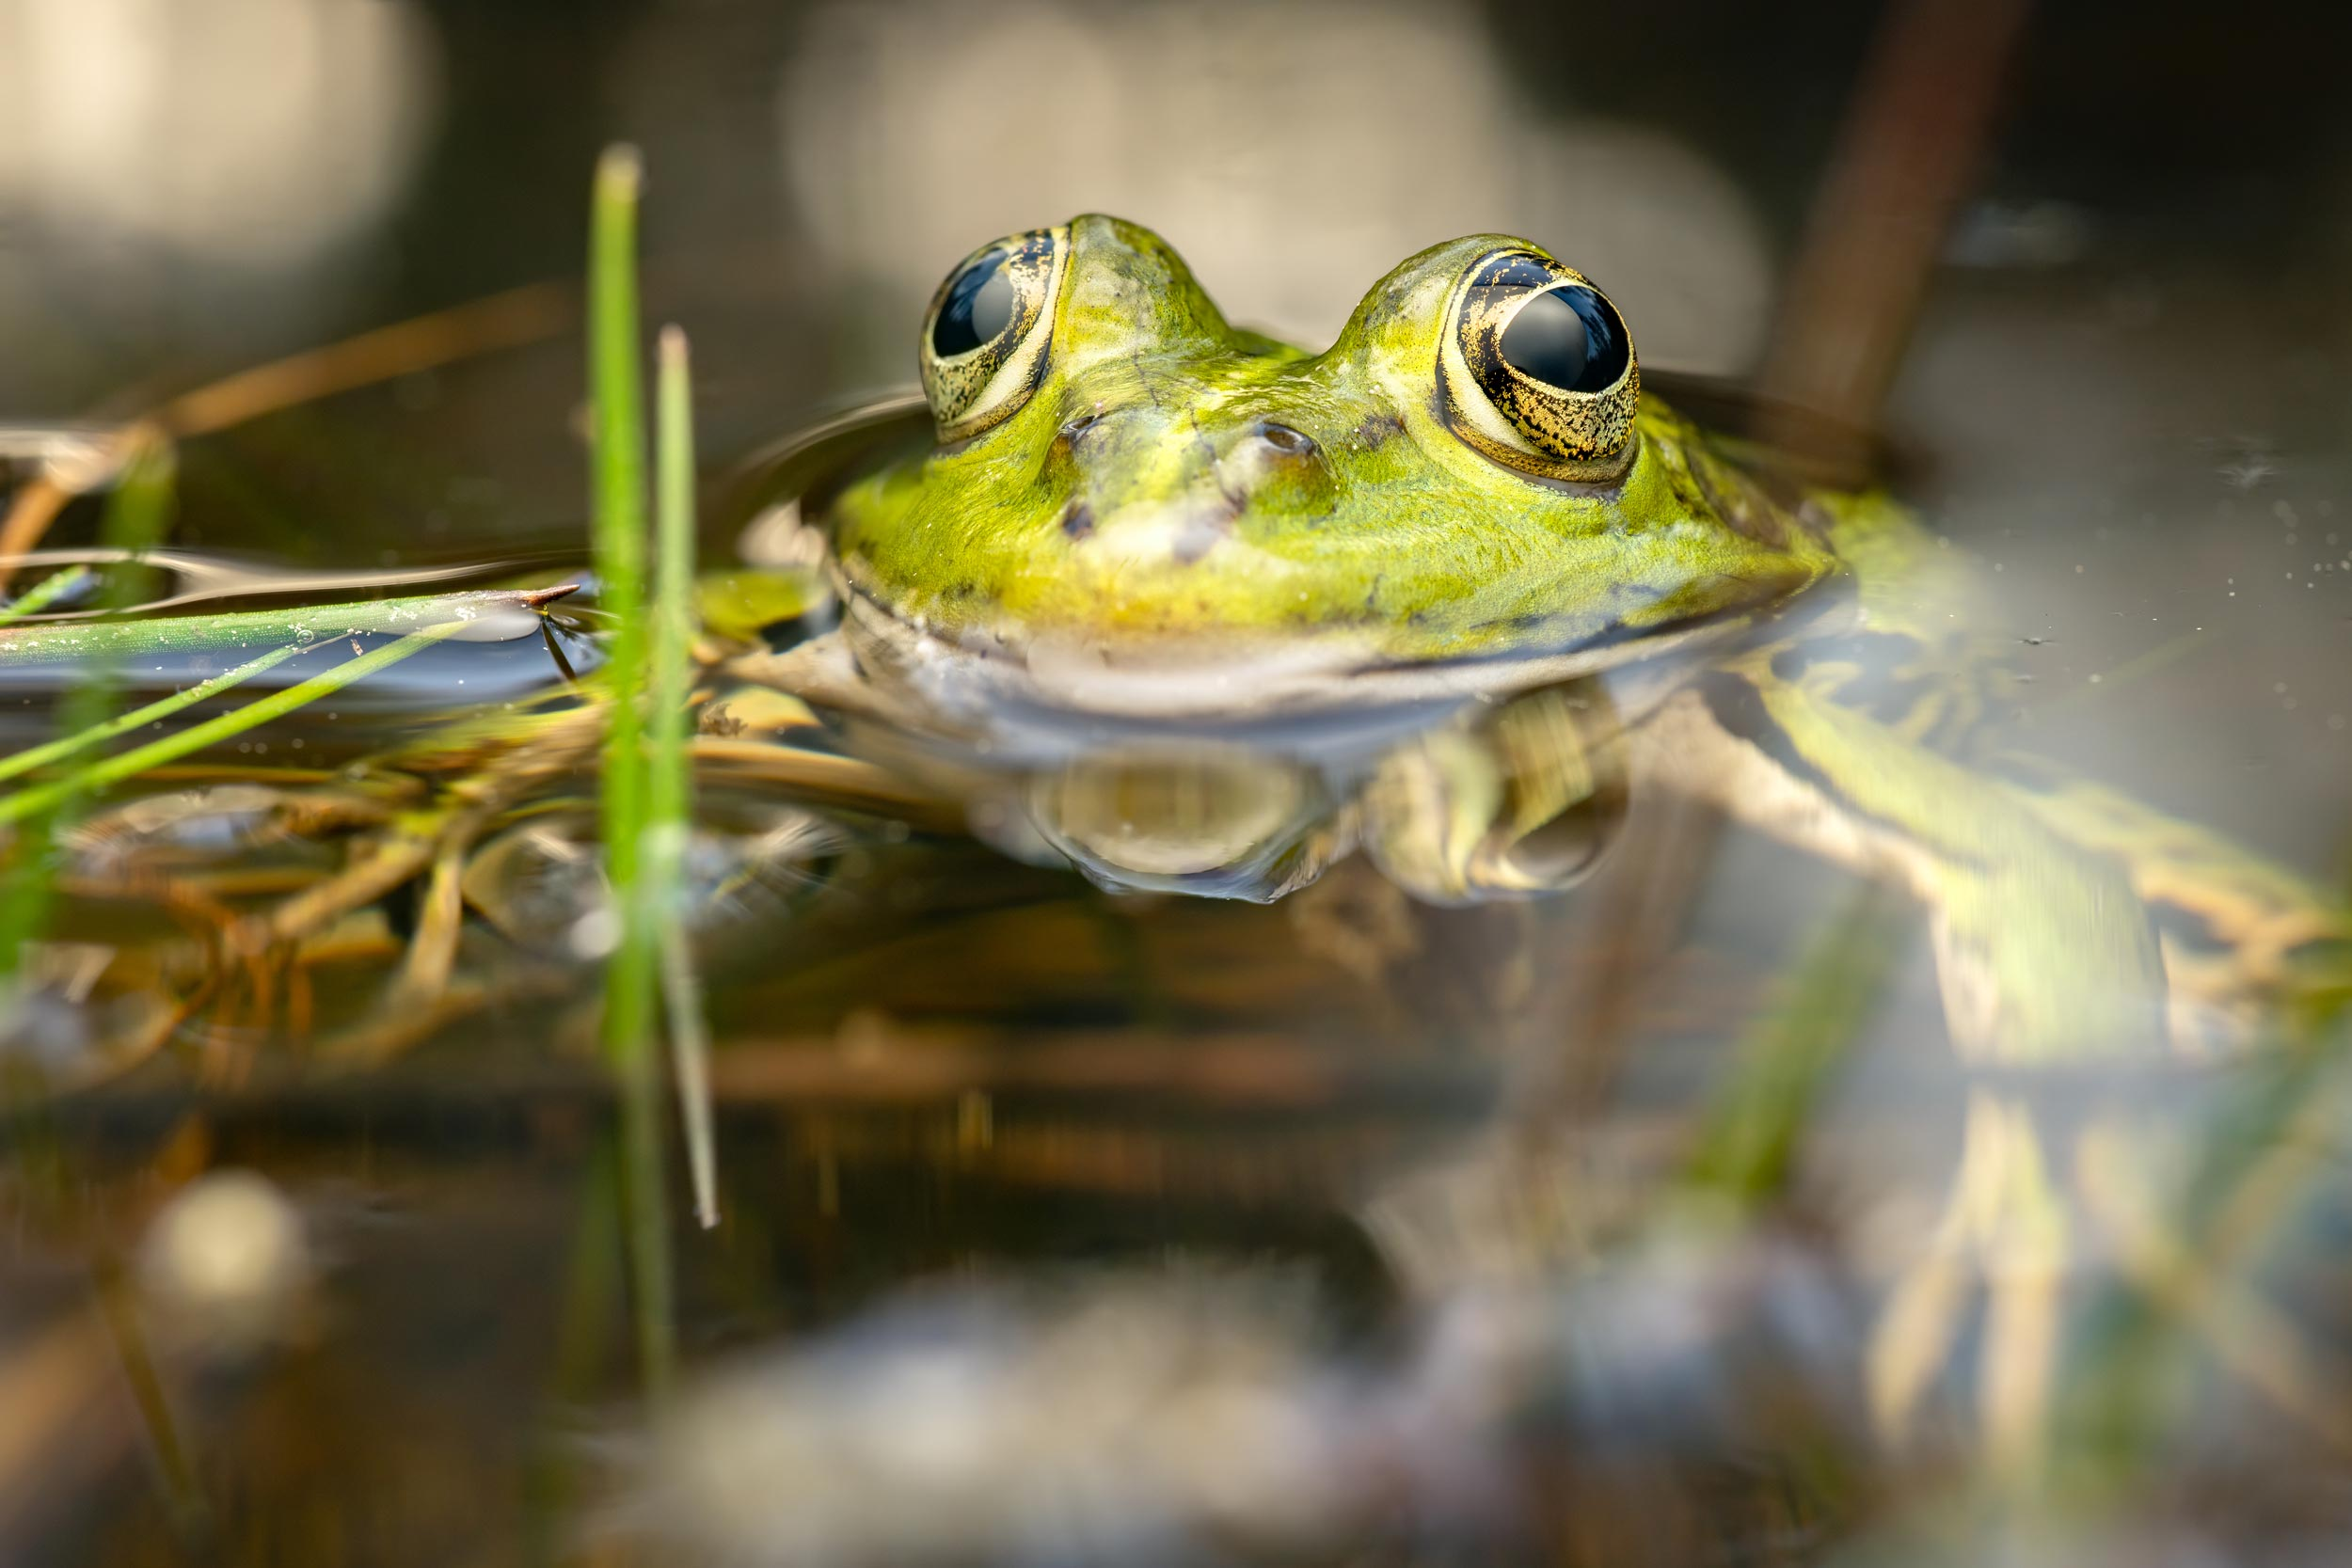 Frog photographed in Lucerne, Switzerland